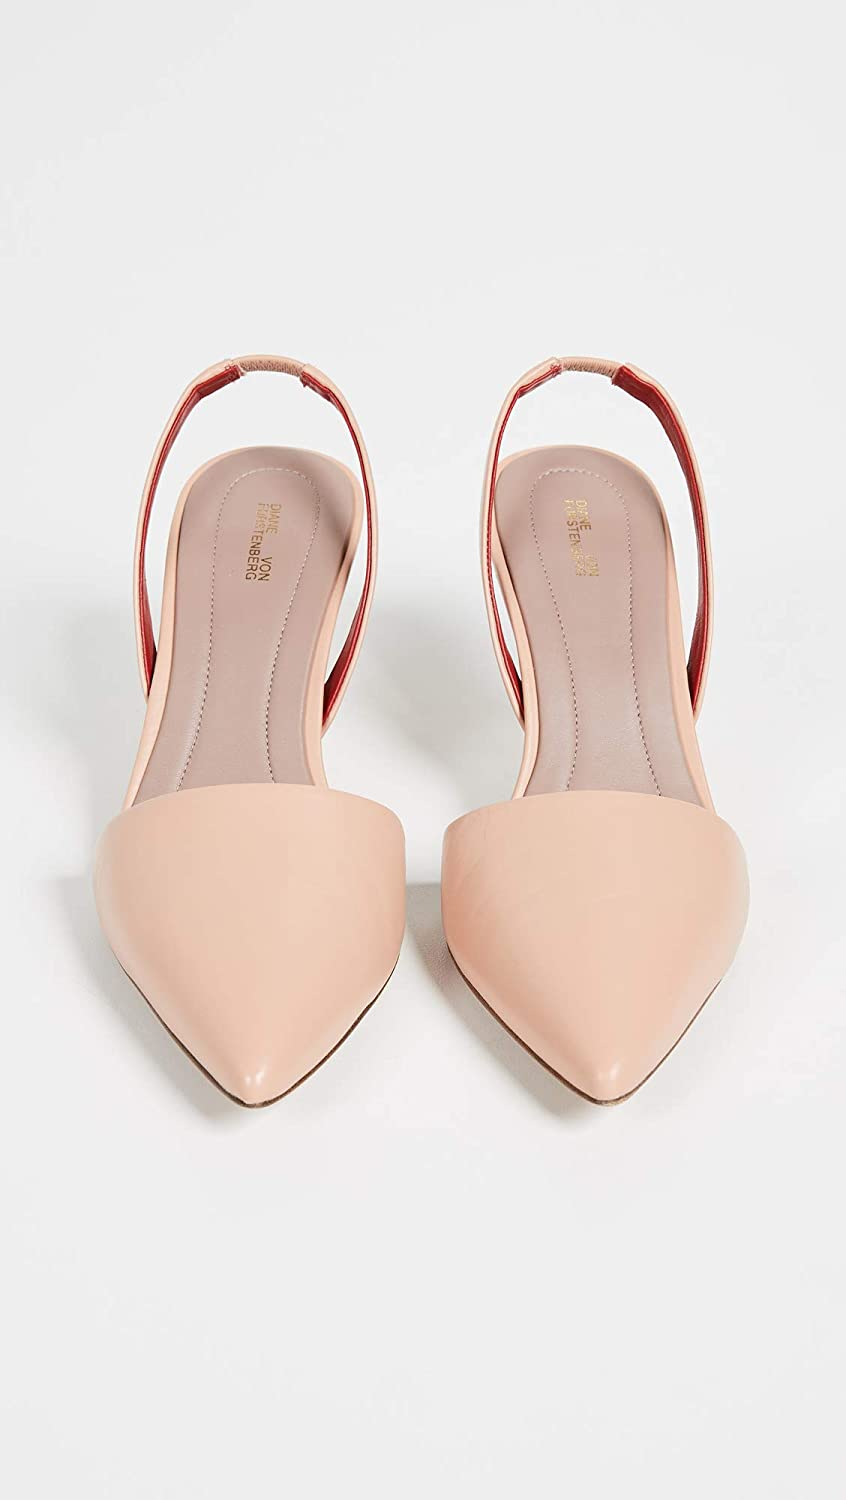 de1d7f46468 Amazon.com  Diane von Furstenberg Women s Mortelle Slingback Pumps  Shoes